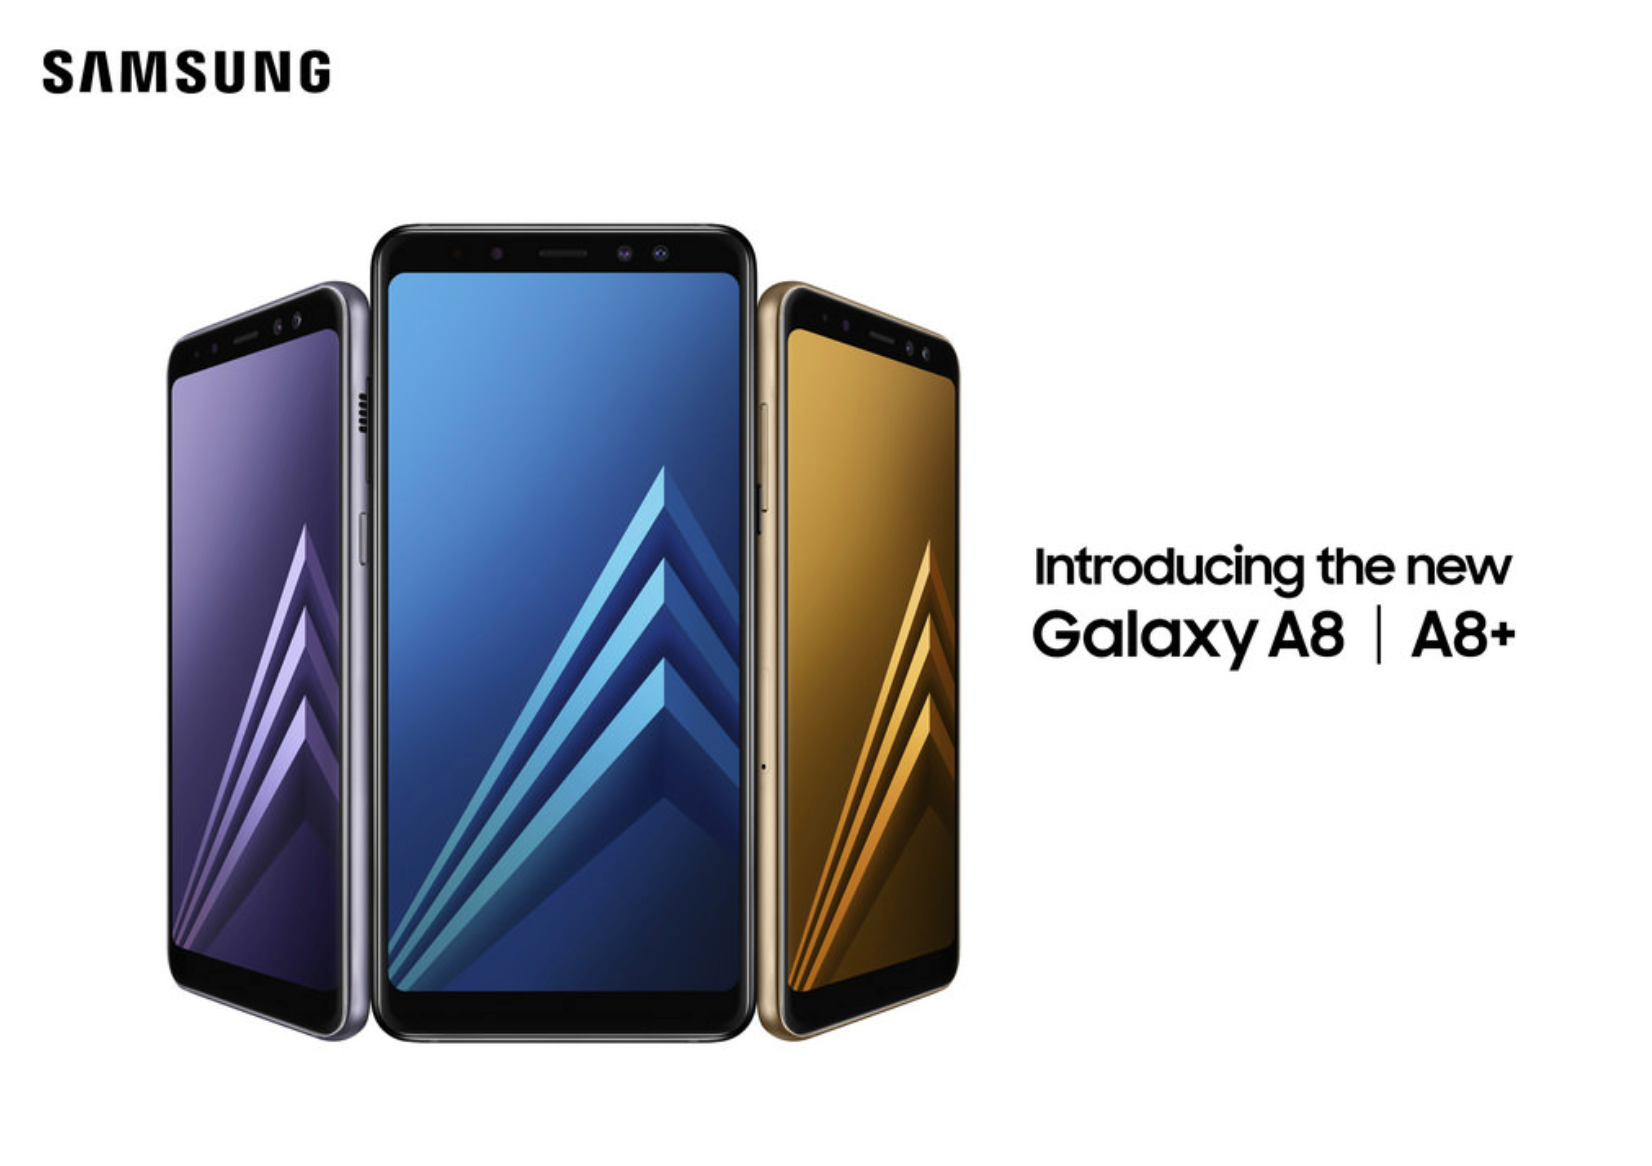 Samsung Galaxy A8+ - best smartphone for 2018-19